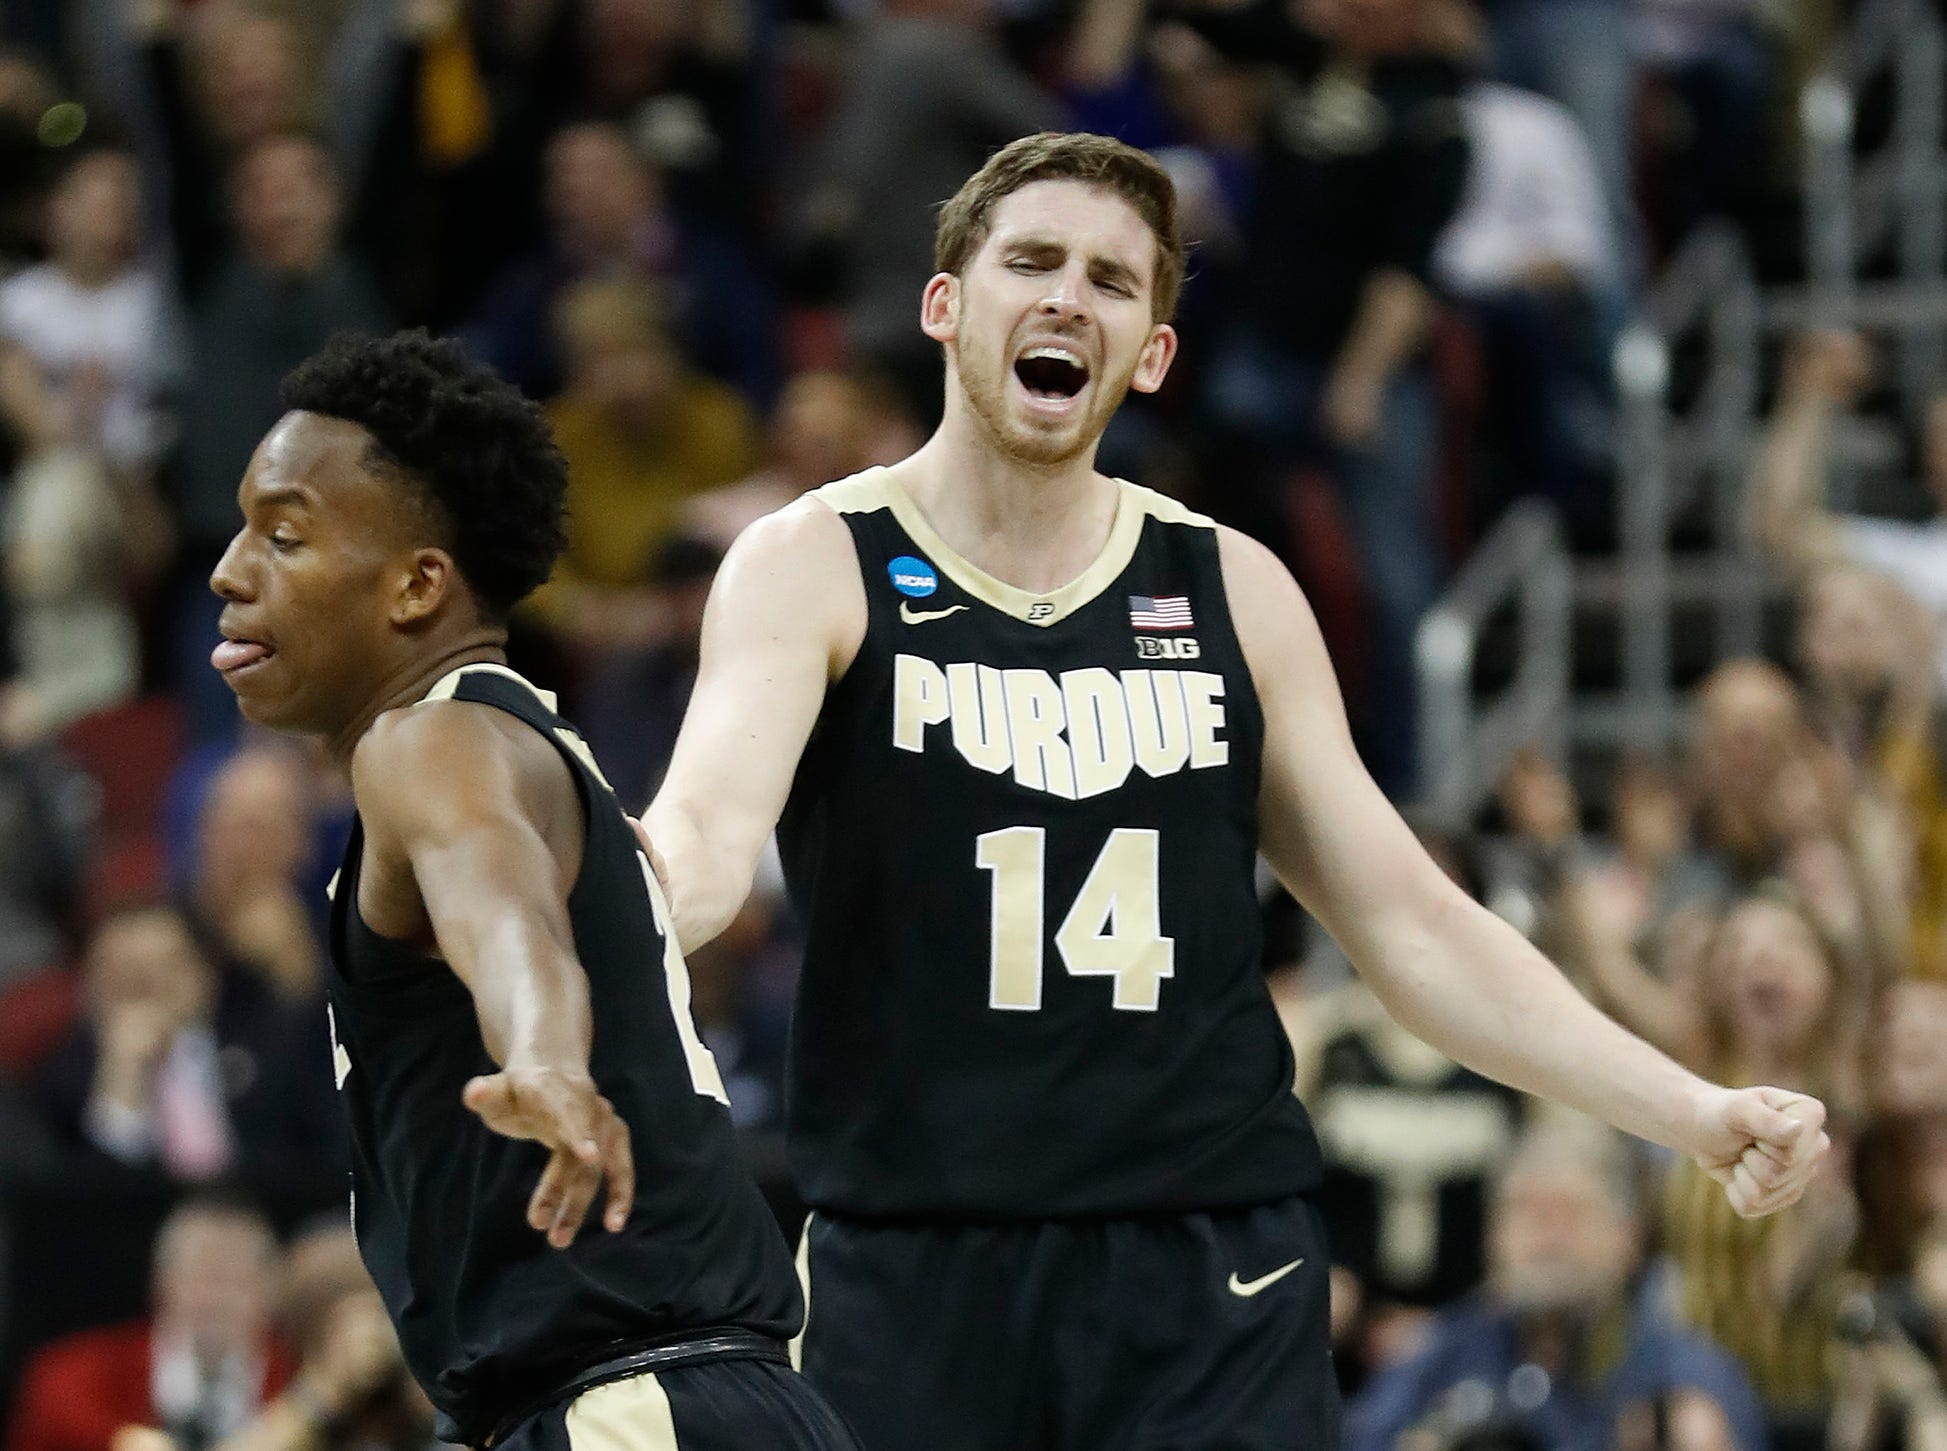 "Purdue Boilermakers guard Ryan Cline (14) celebrates with Eric Hunter Jr. (2) in the first half of their NCAA Division I Basketball Championship ""Elite 8"" basketball game at the KFC Yum! Center in Louisville, KY., on Saturday, Mar 30, 2019."